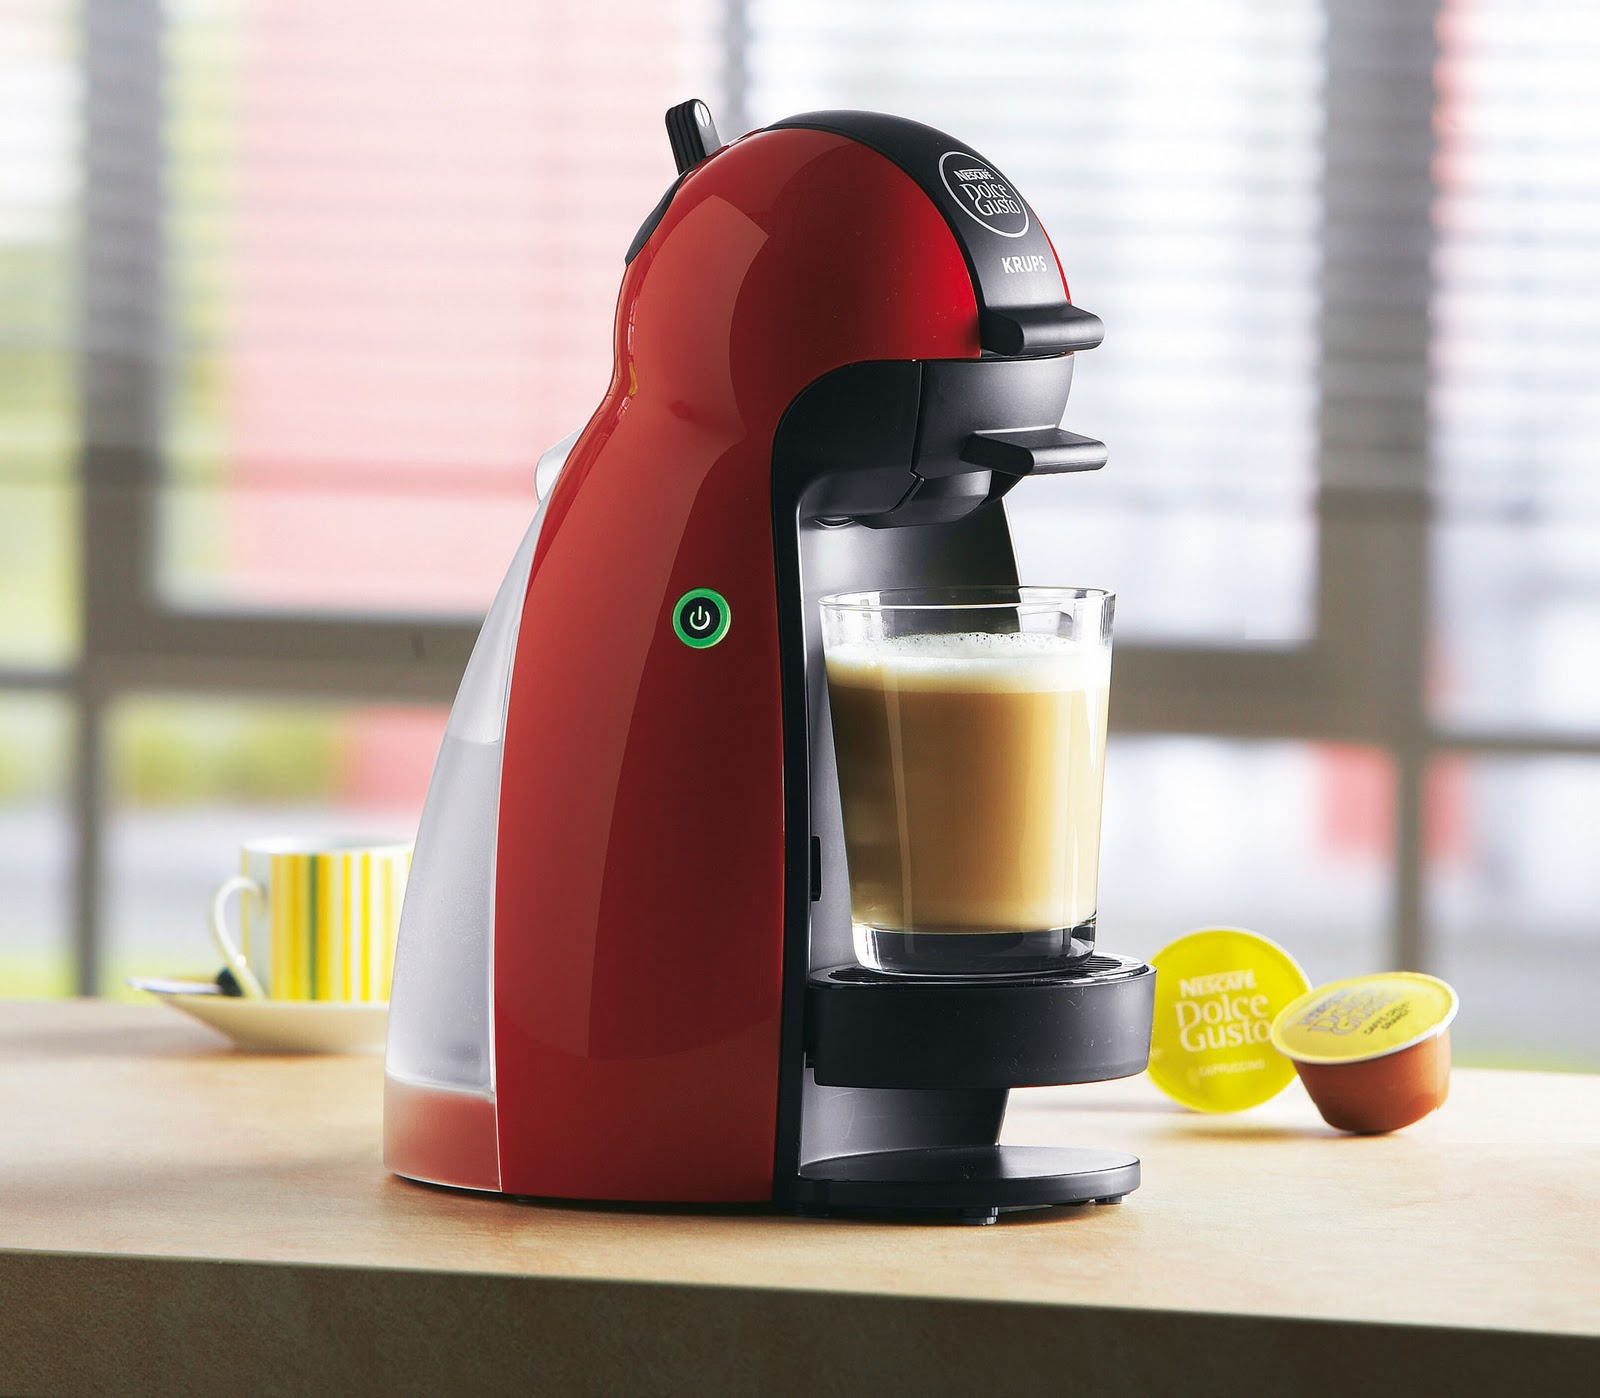 save 20 on a nescafe dolce gusto coffee machine. Black Bedroom Furniture Sets. Home Design Ideas